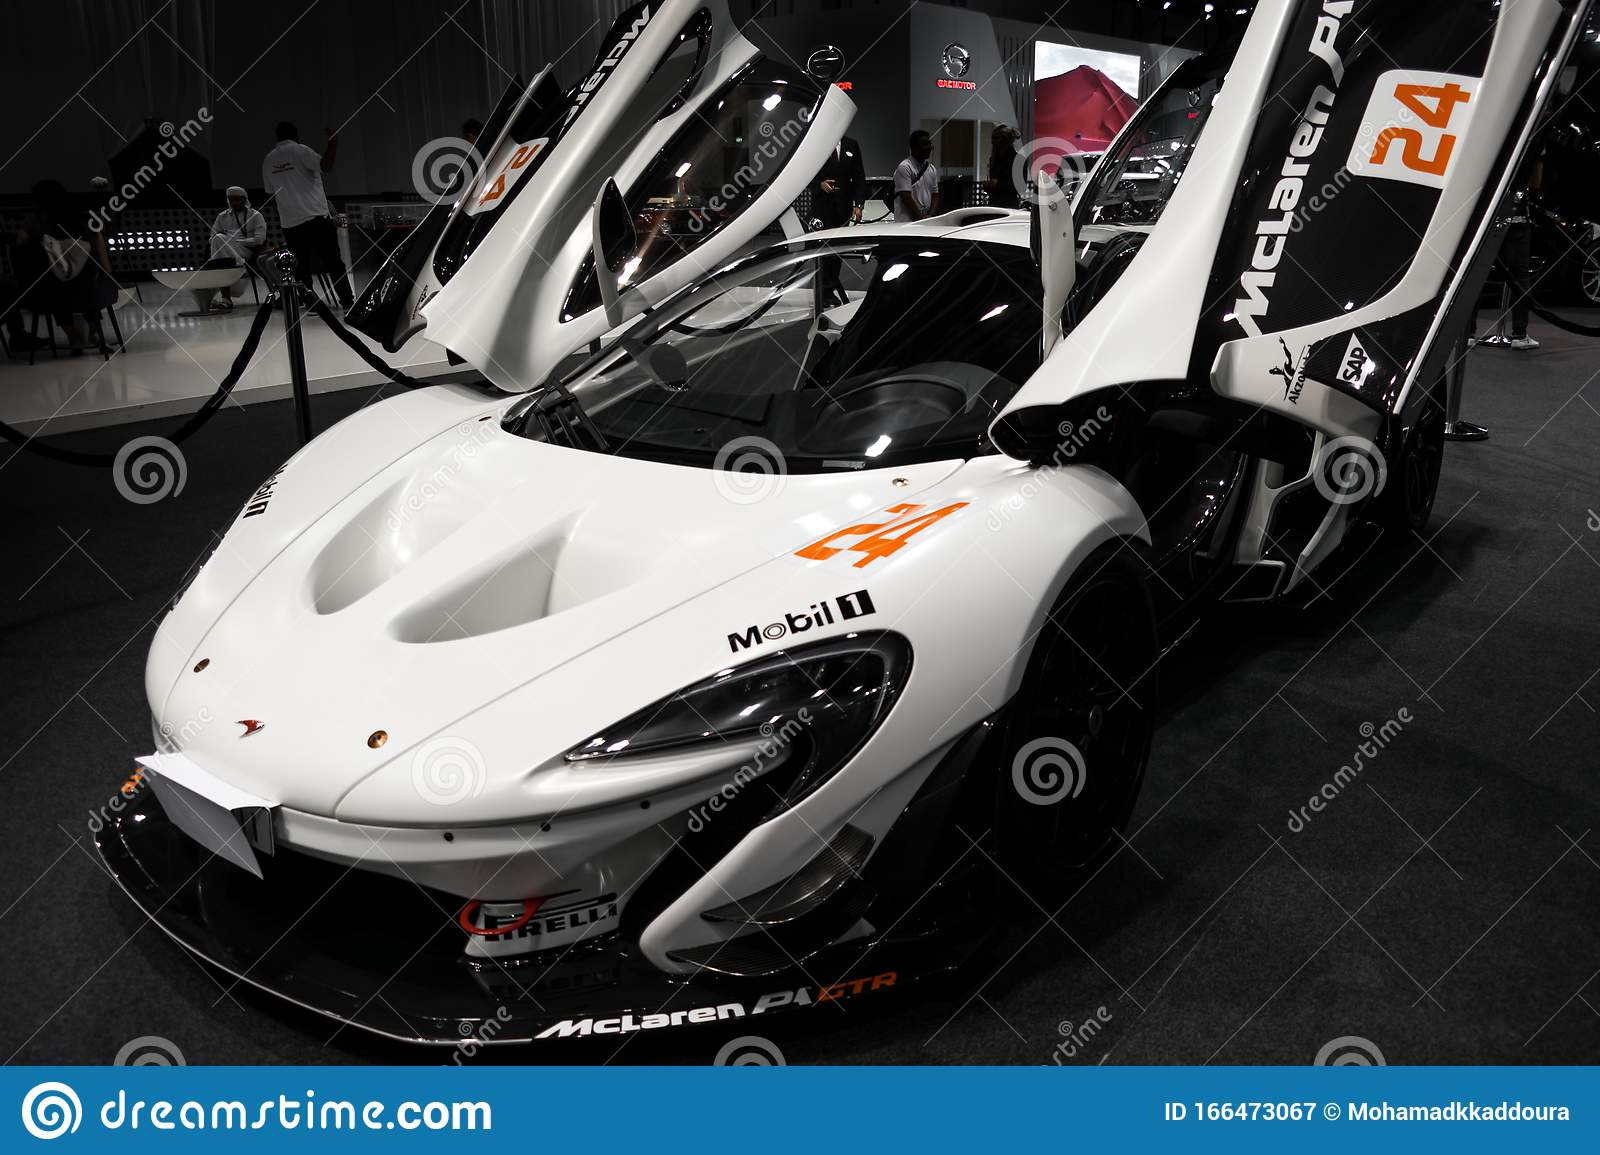 Modified Track White Mclaren P1 Displayed In Dubai Car Show High Performance Exotic Cars Editorial Photography Image Of Exotic Cars 166473067